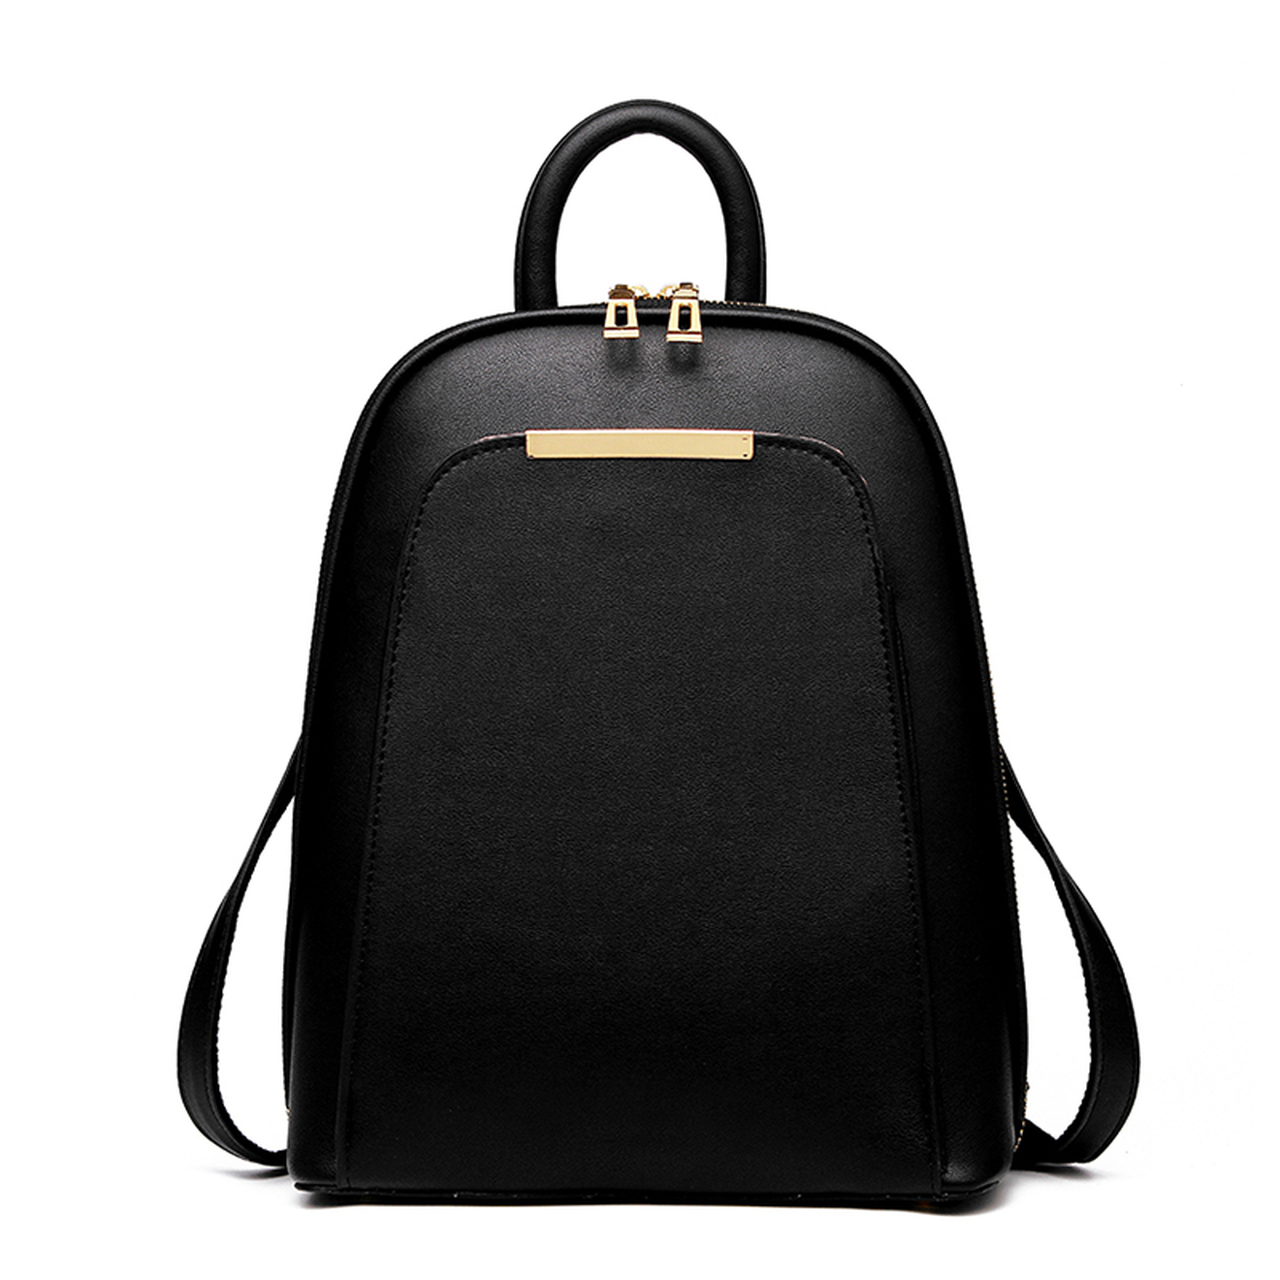 ... DIZHIGE Brand 2017 Solid High Quality PU Leather Backpack Women  Designer School Bags For Teenagers Girls ... 07e242b980905